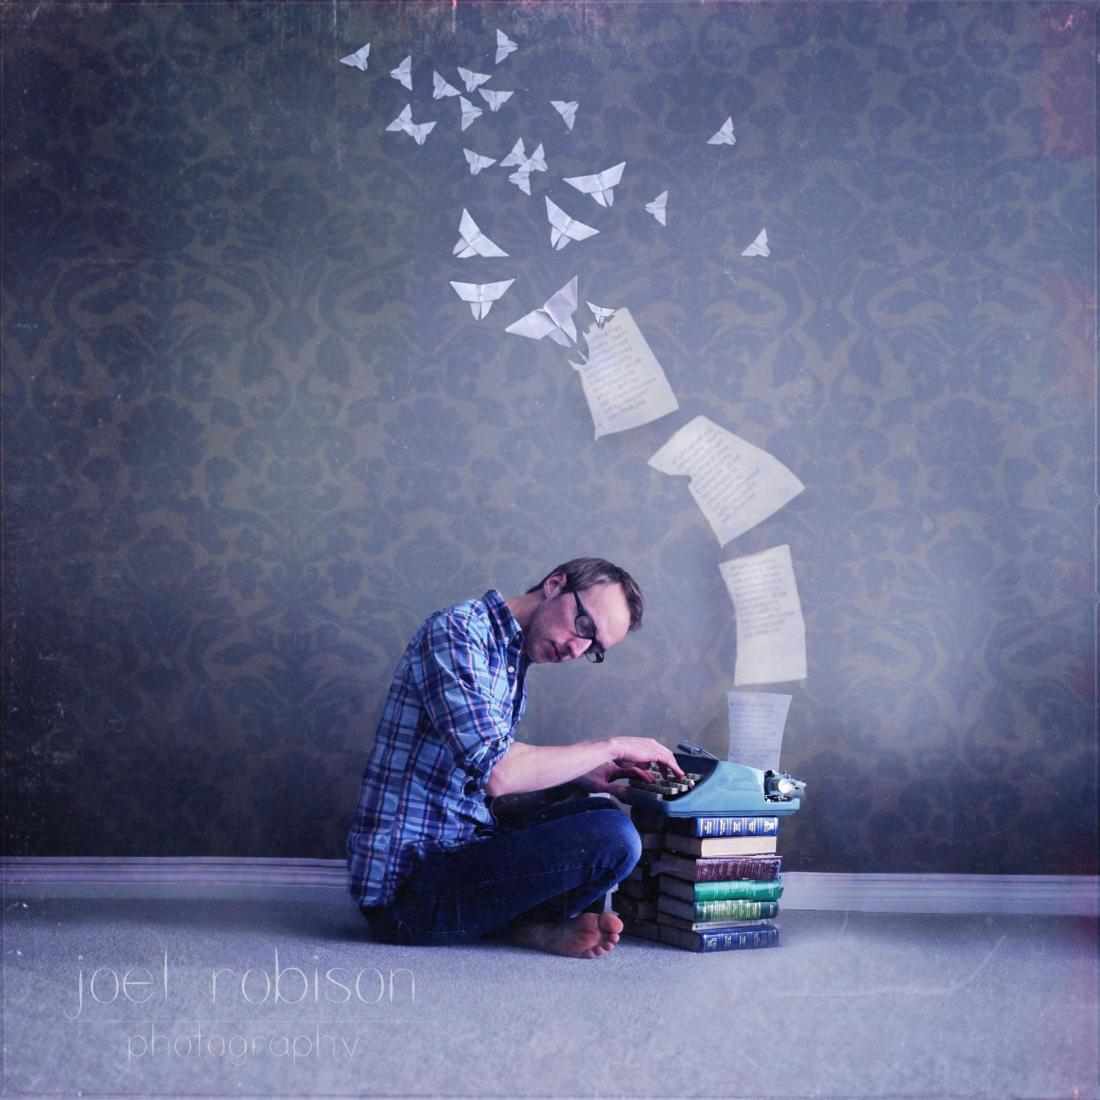 Joel-Robison-Fine-art-Photography-9